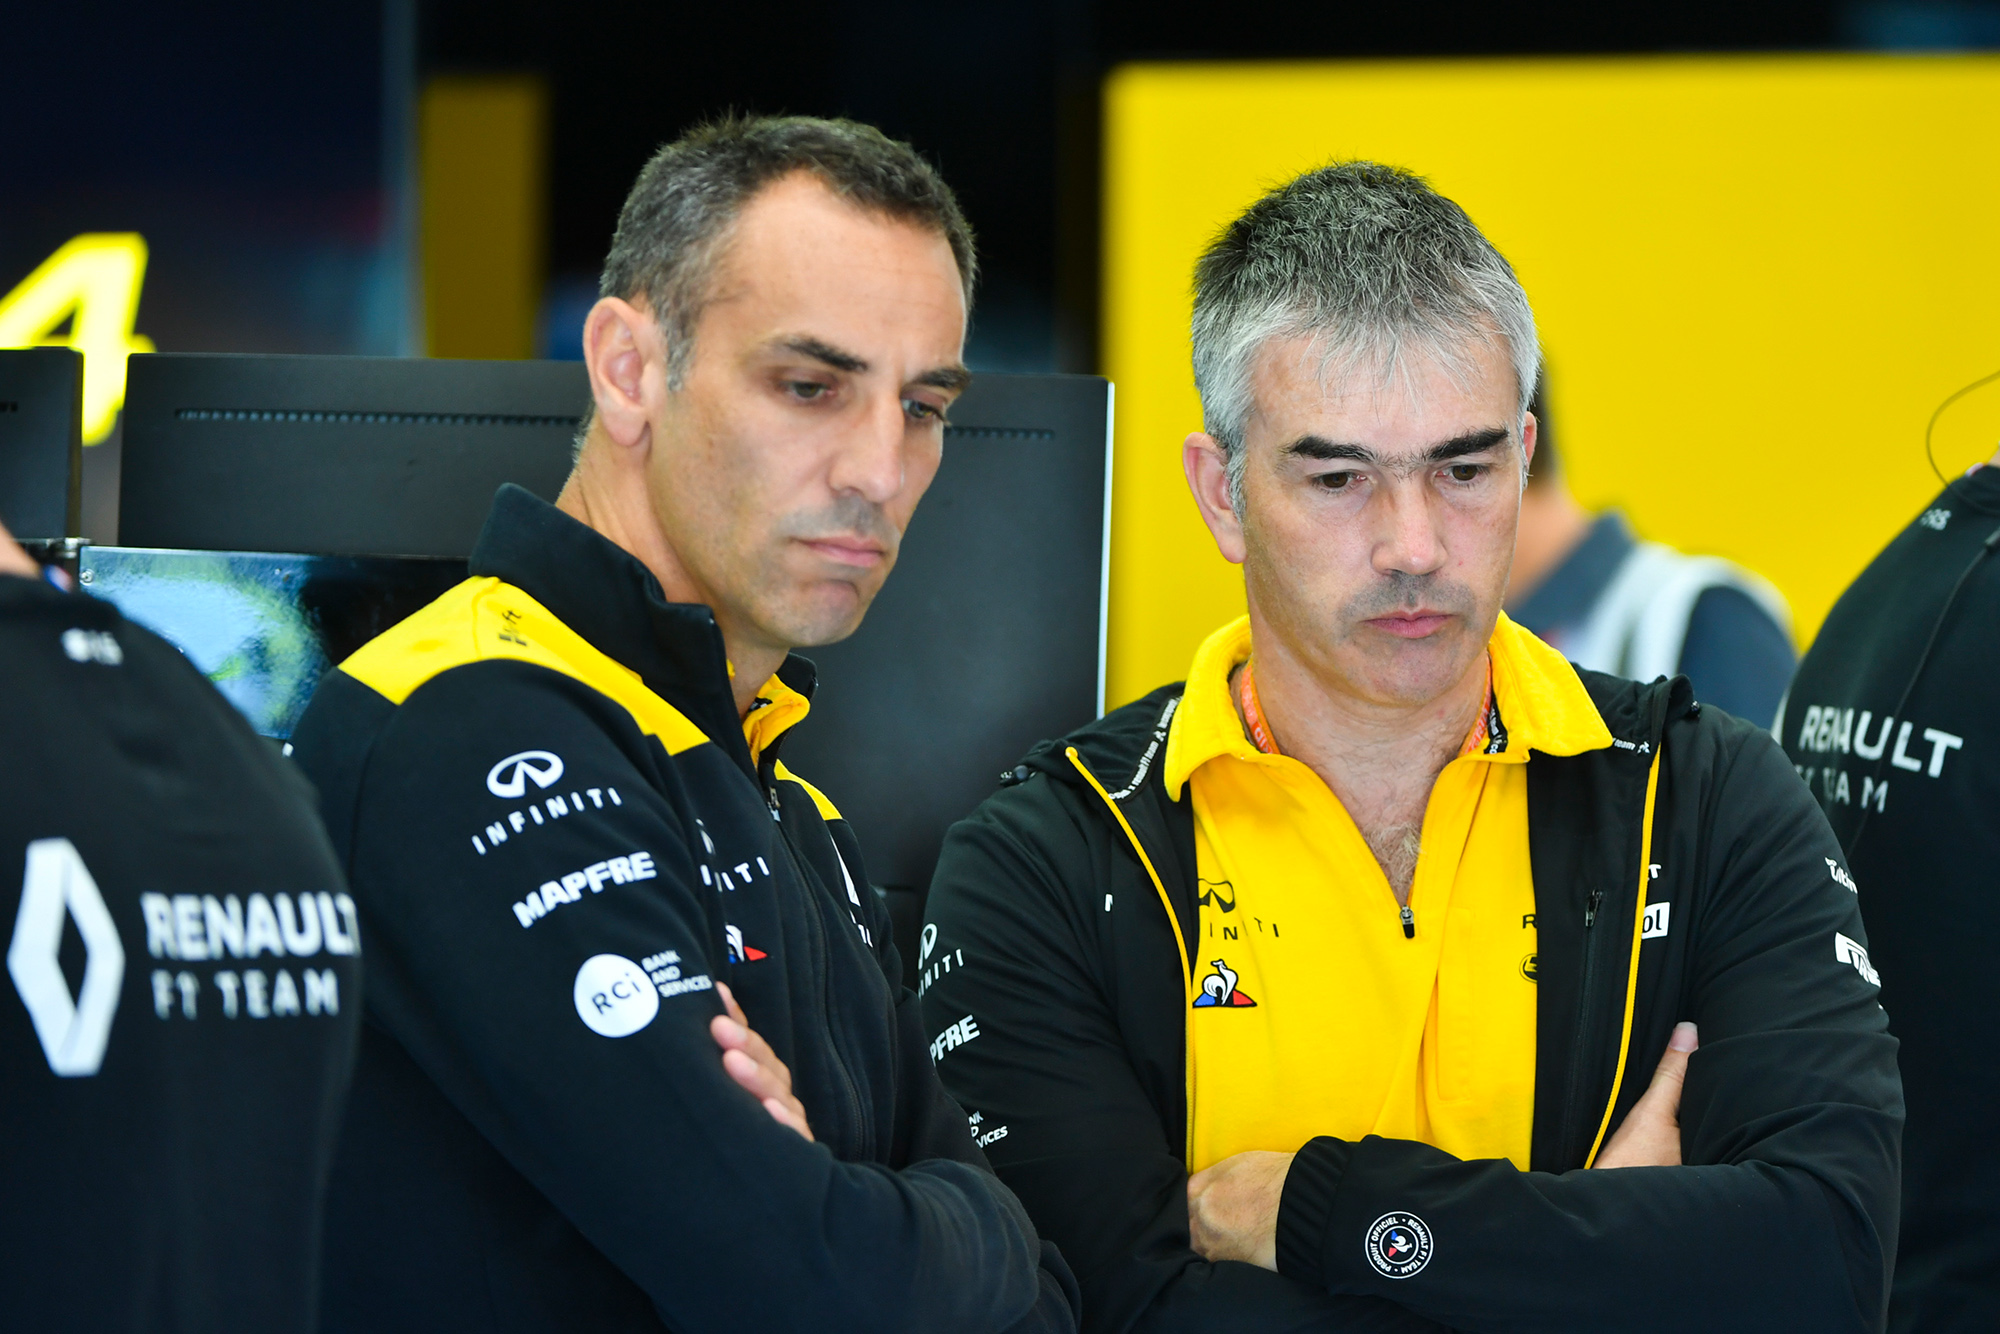 Cyril Abiteboul and Nick Chester at Renault F1 in 2019